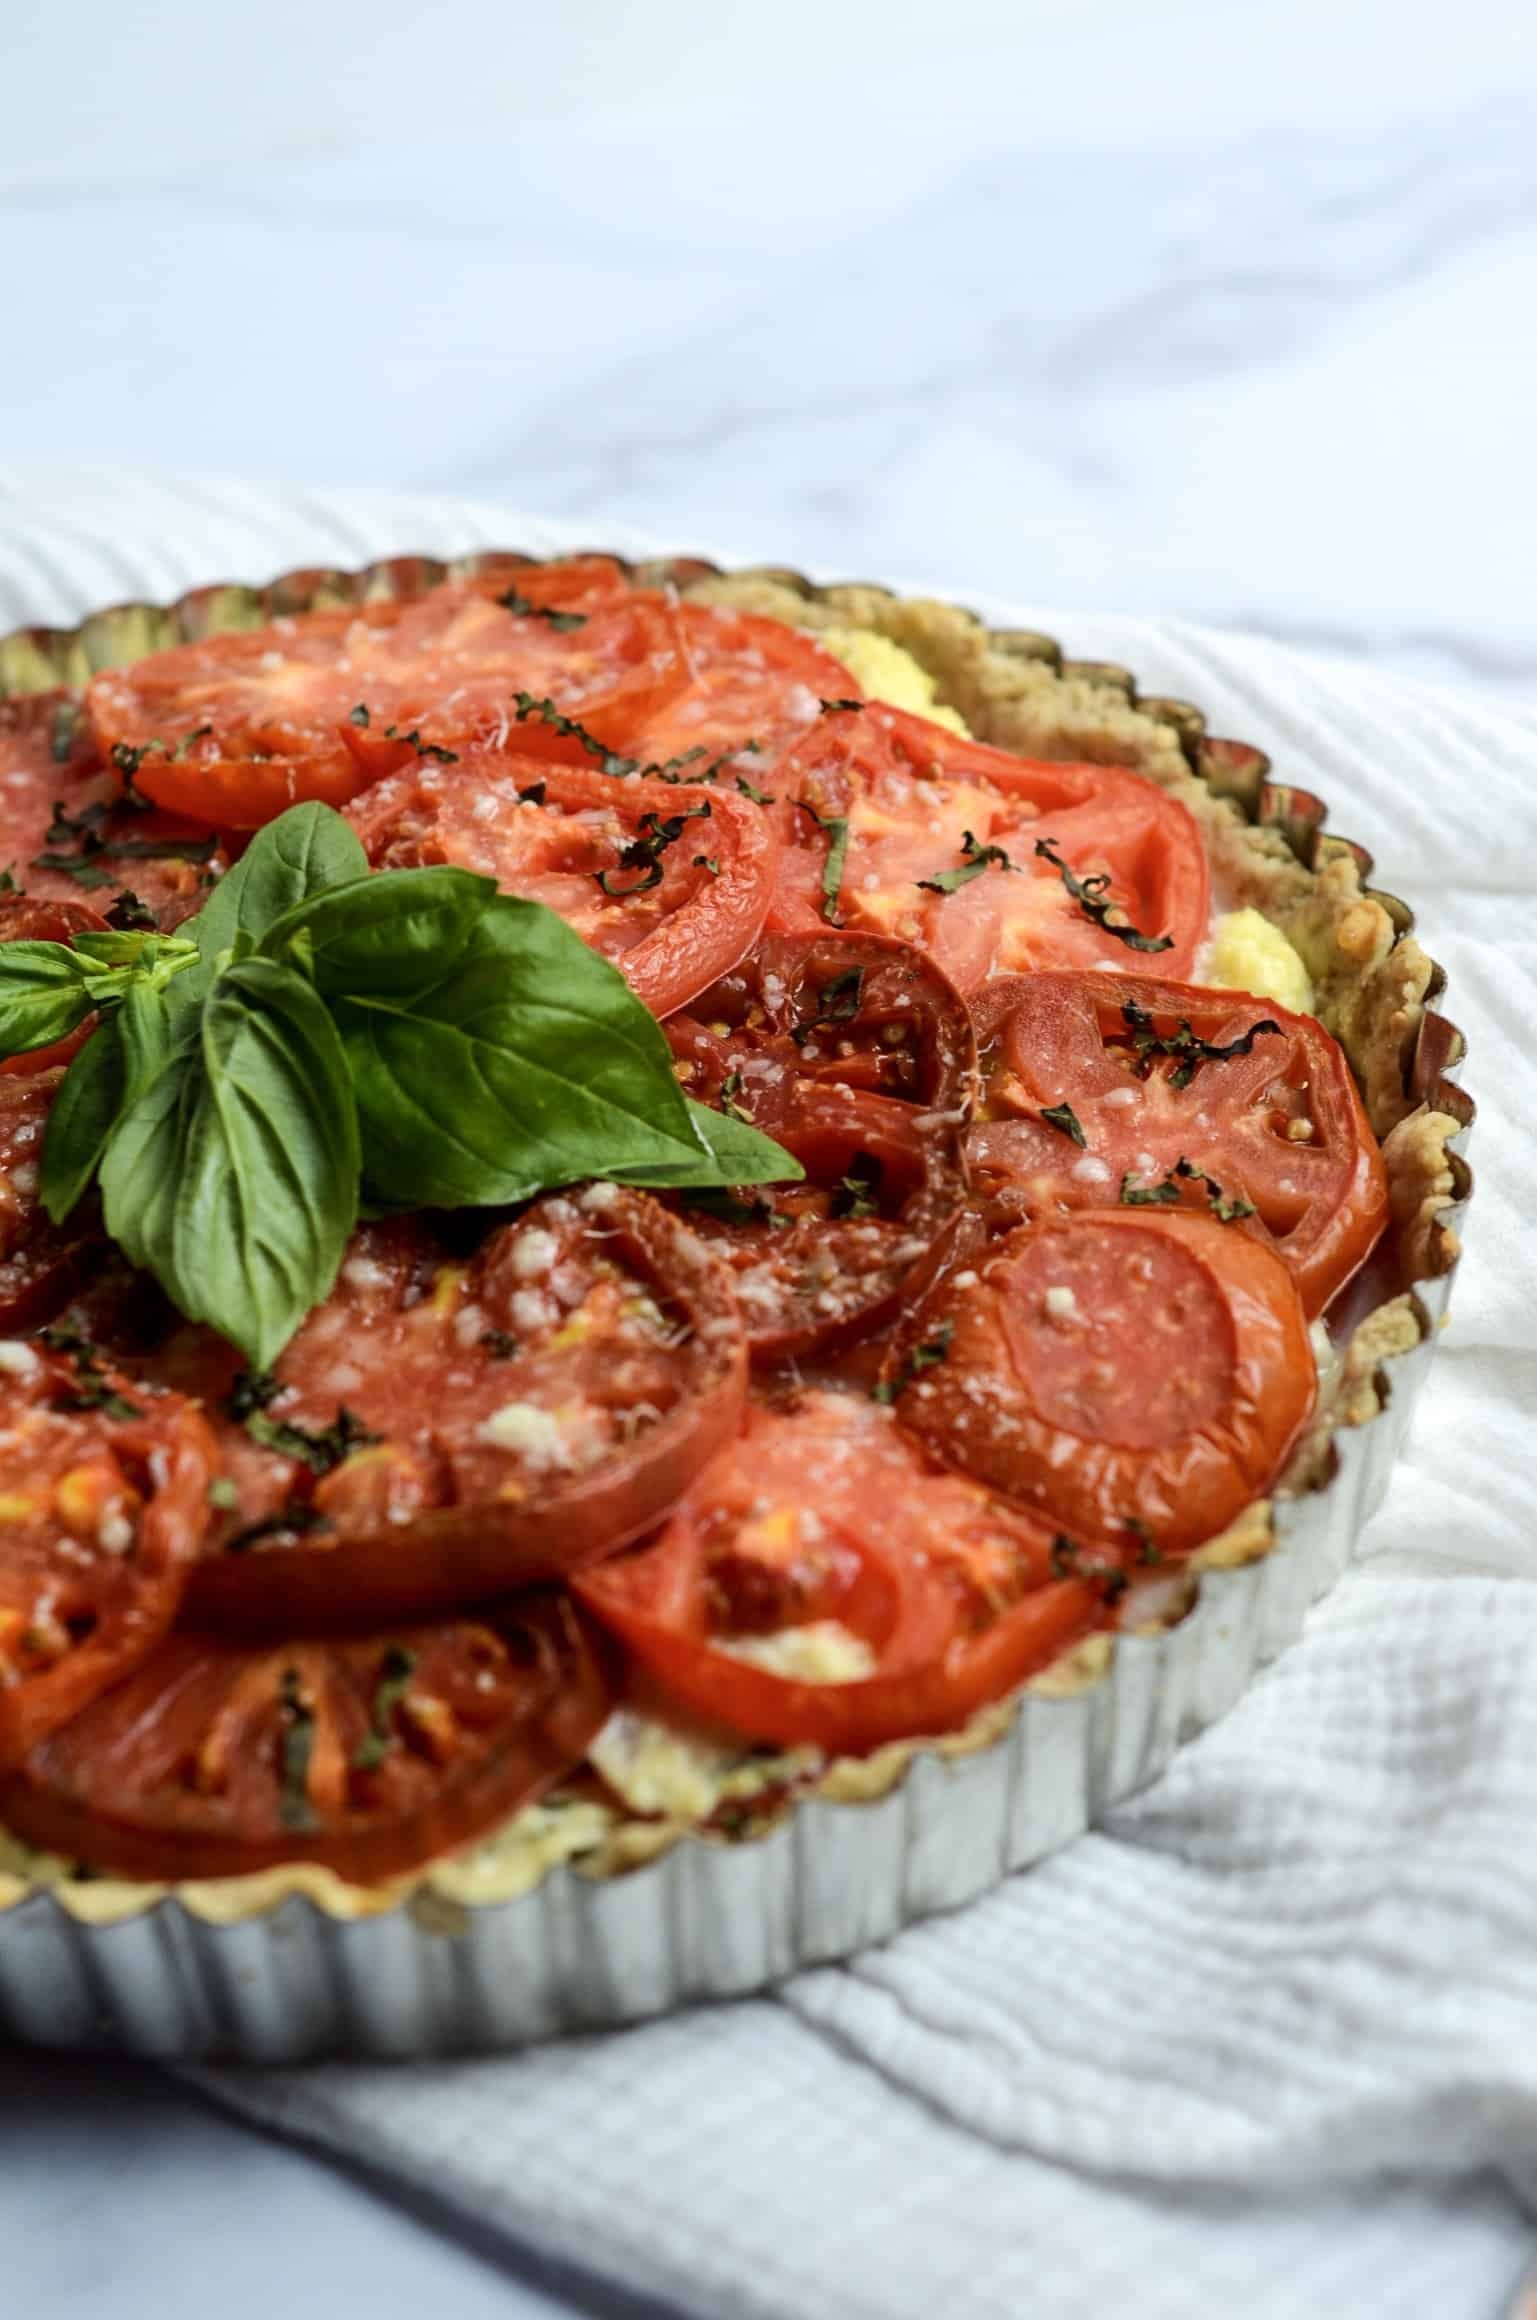 parmesan and basil on tomato pie